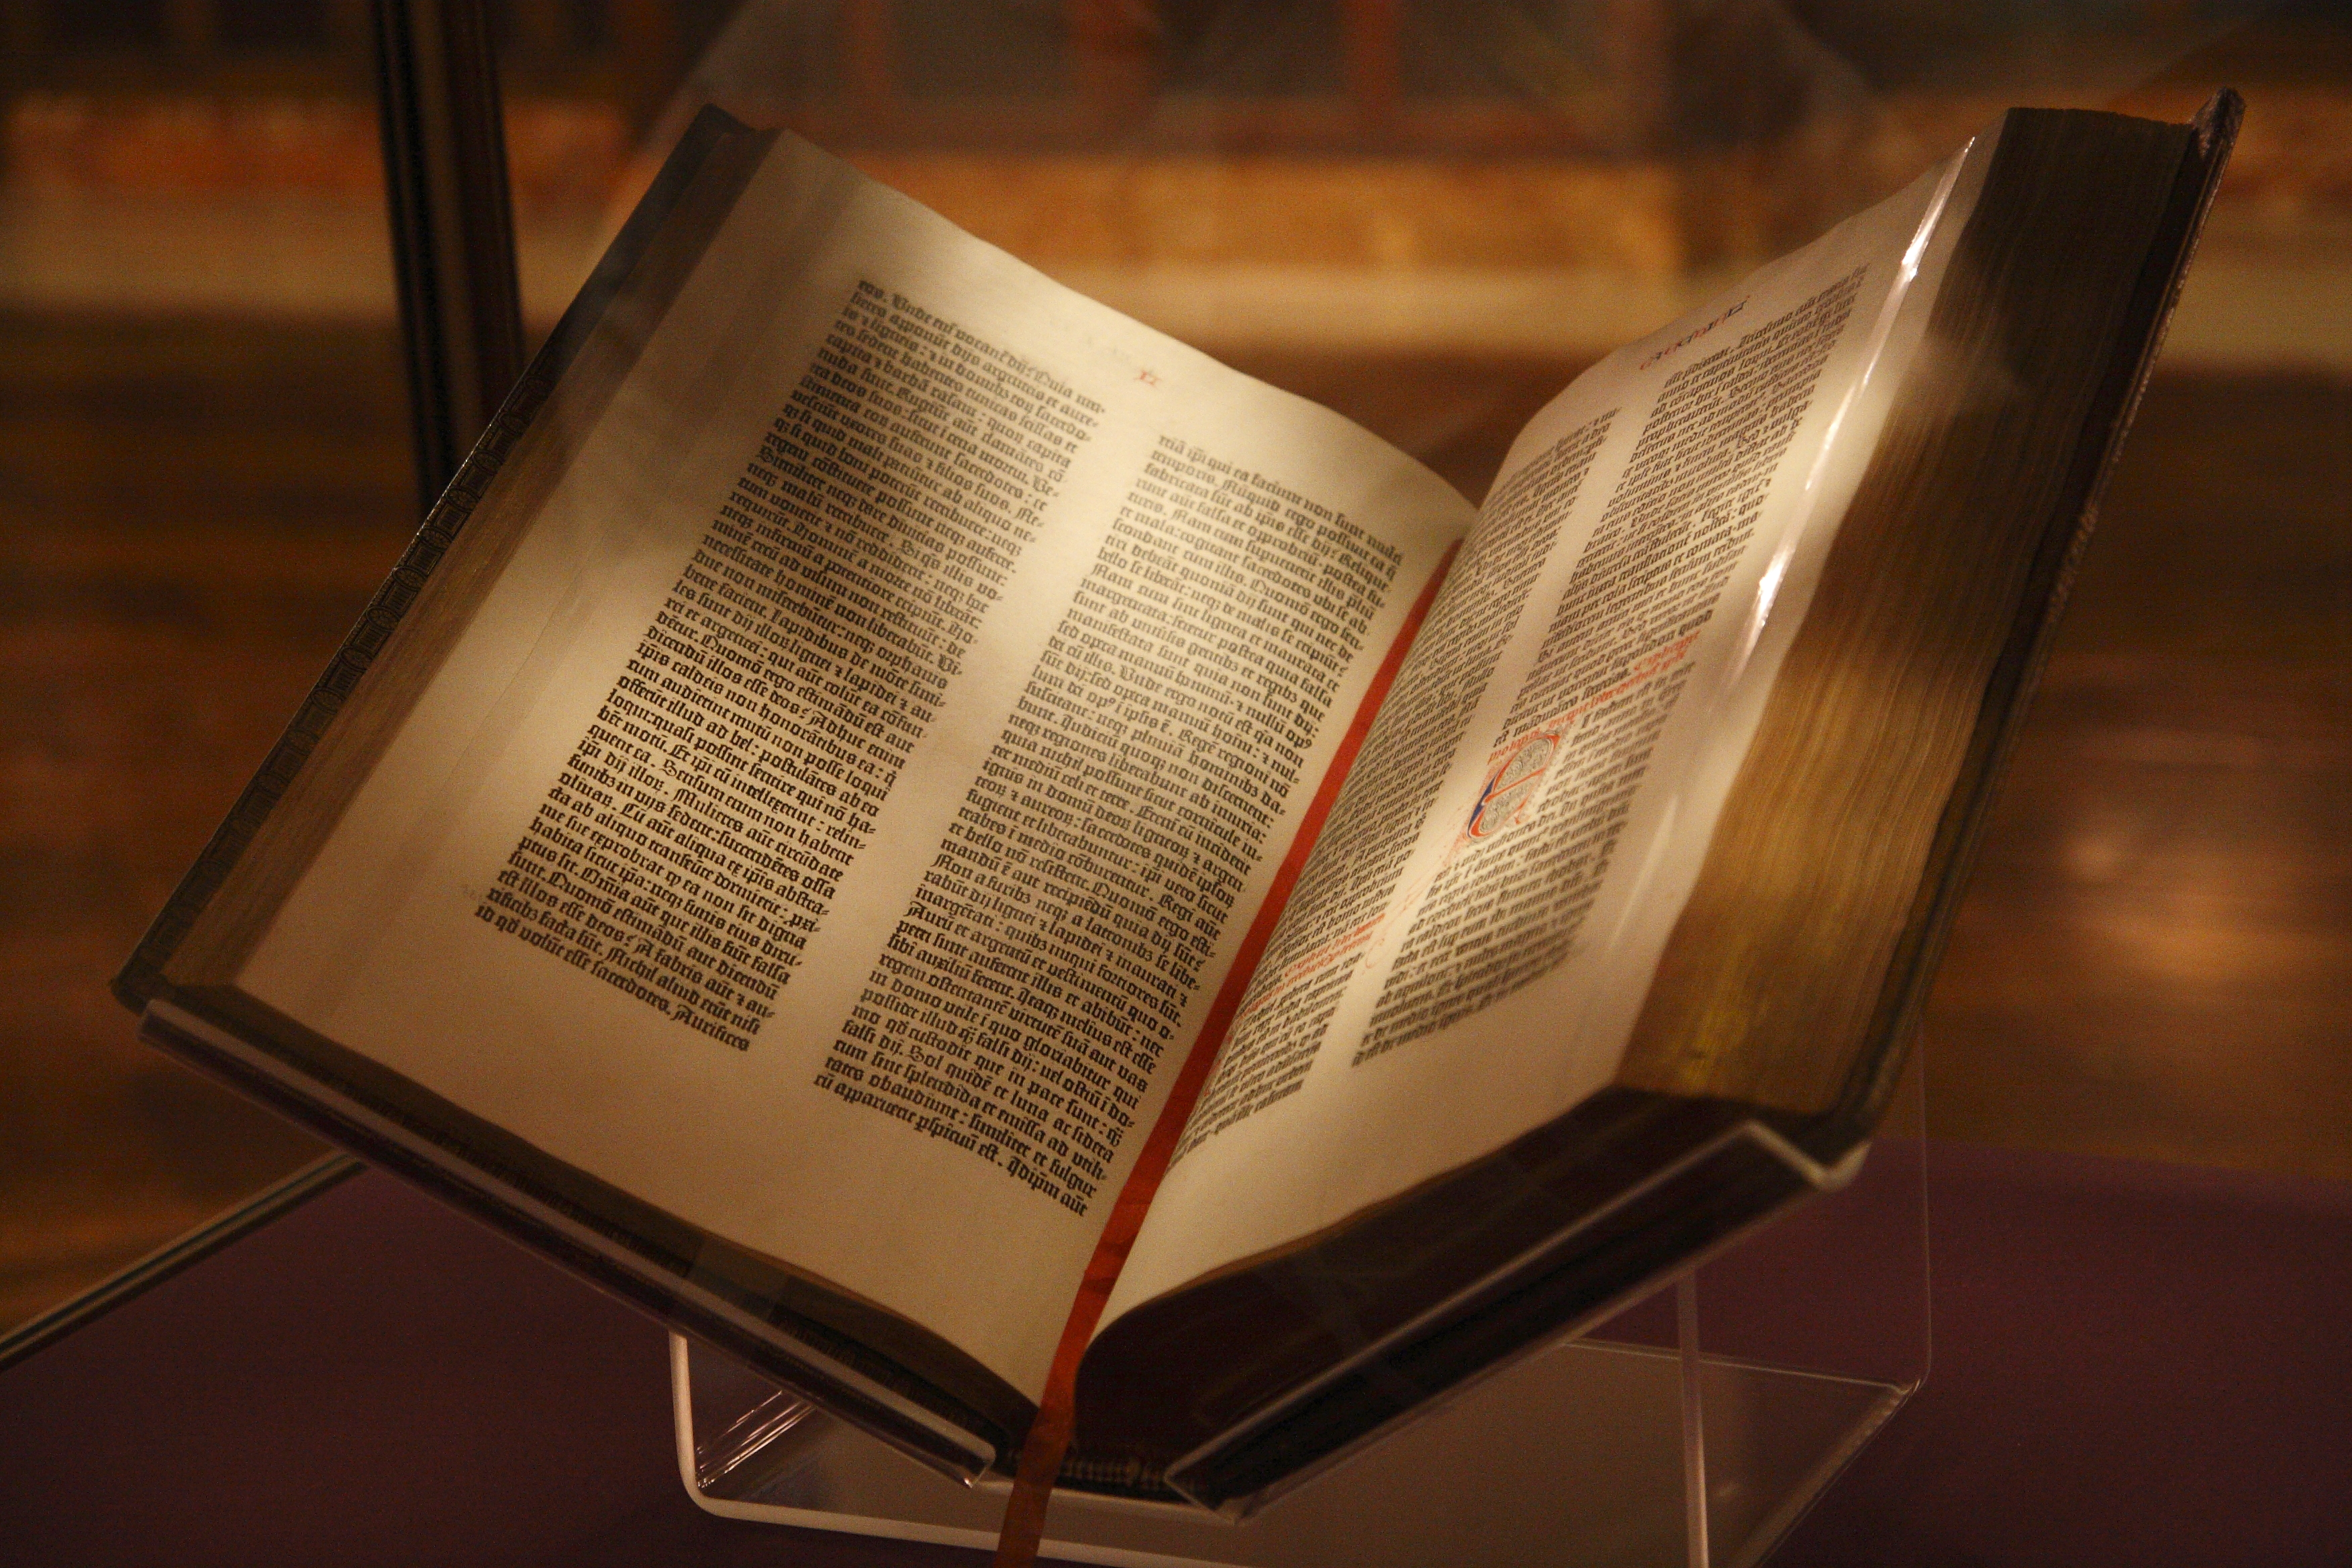 File:Gutenberg Bible, New York Public Library, USA. Pic 01.jpg ...